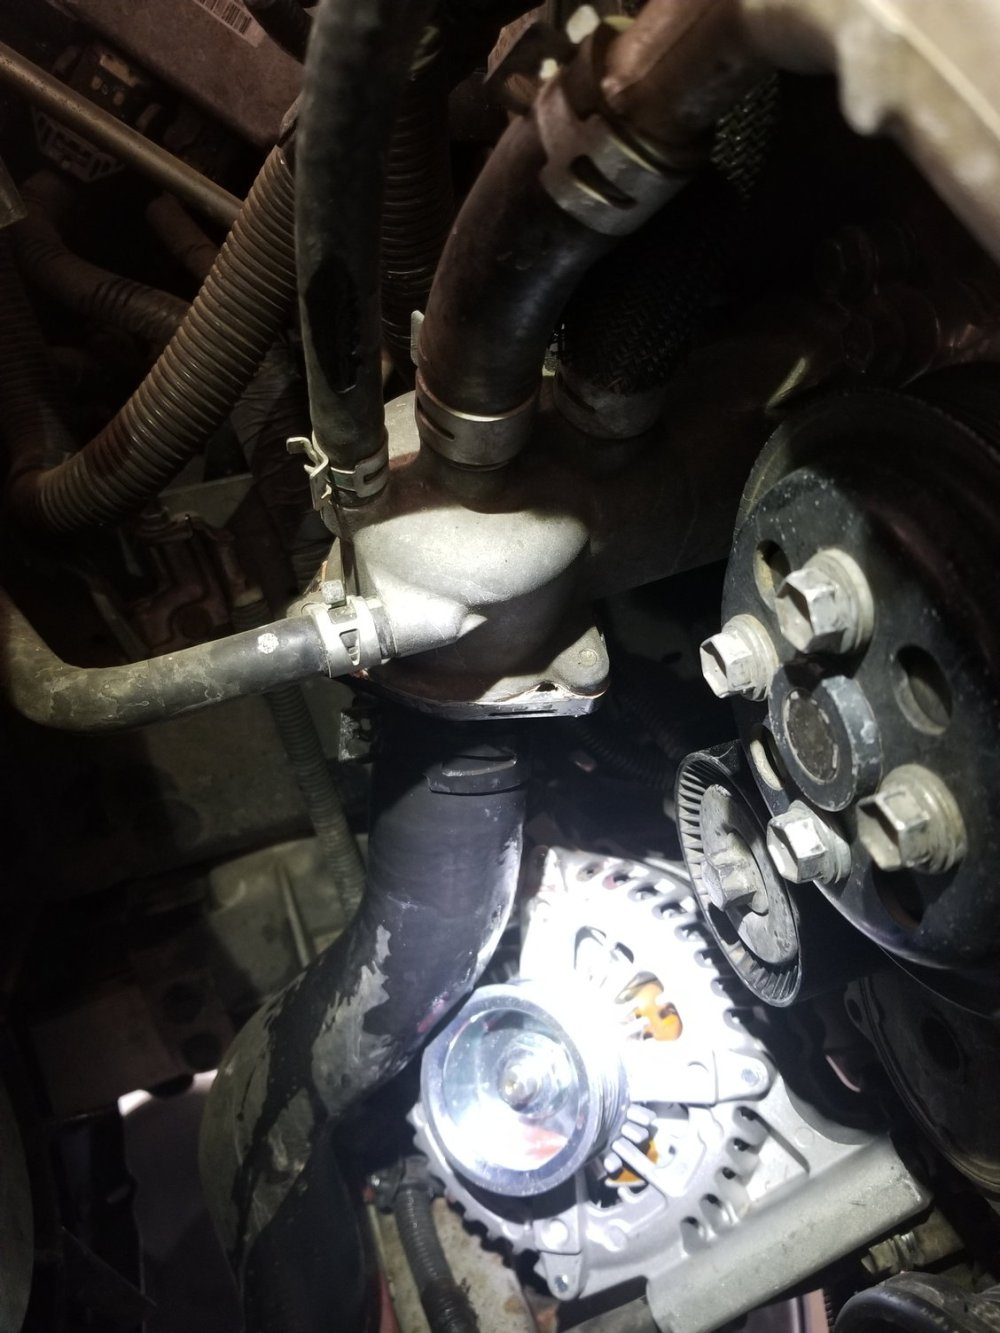 medium resolution of don t forget to slip the metal harness retainer back onto the front 14mm bolt while everything is loose otherwise if it s skipped you have to decide to do